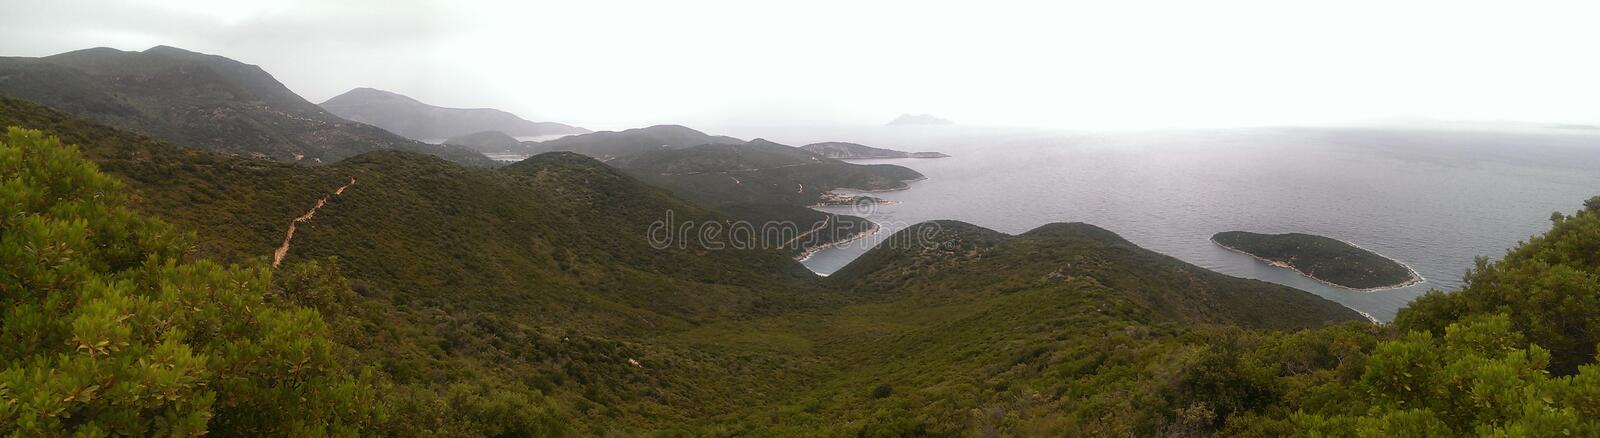 Ithaca. Island, Ionian sea, Greece. View along East shore stock images